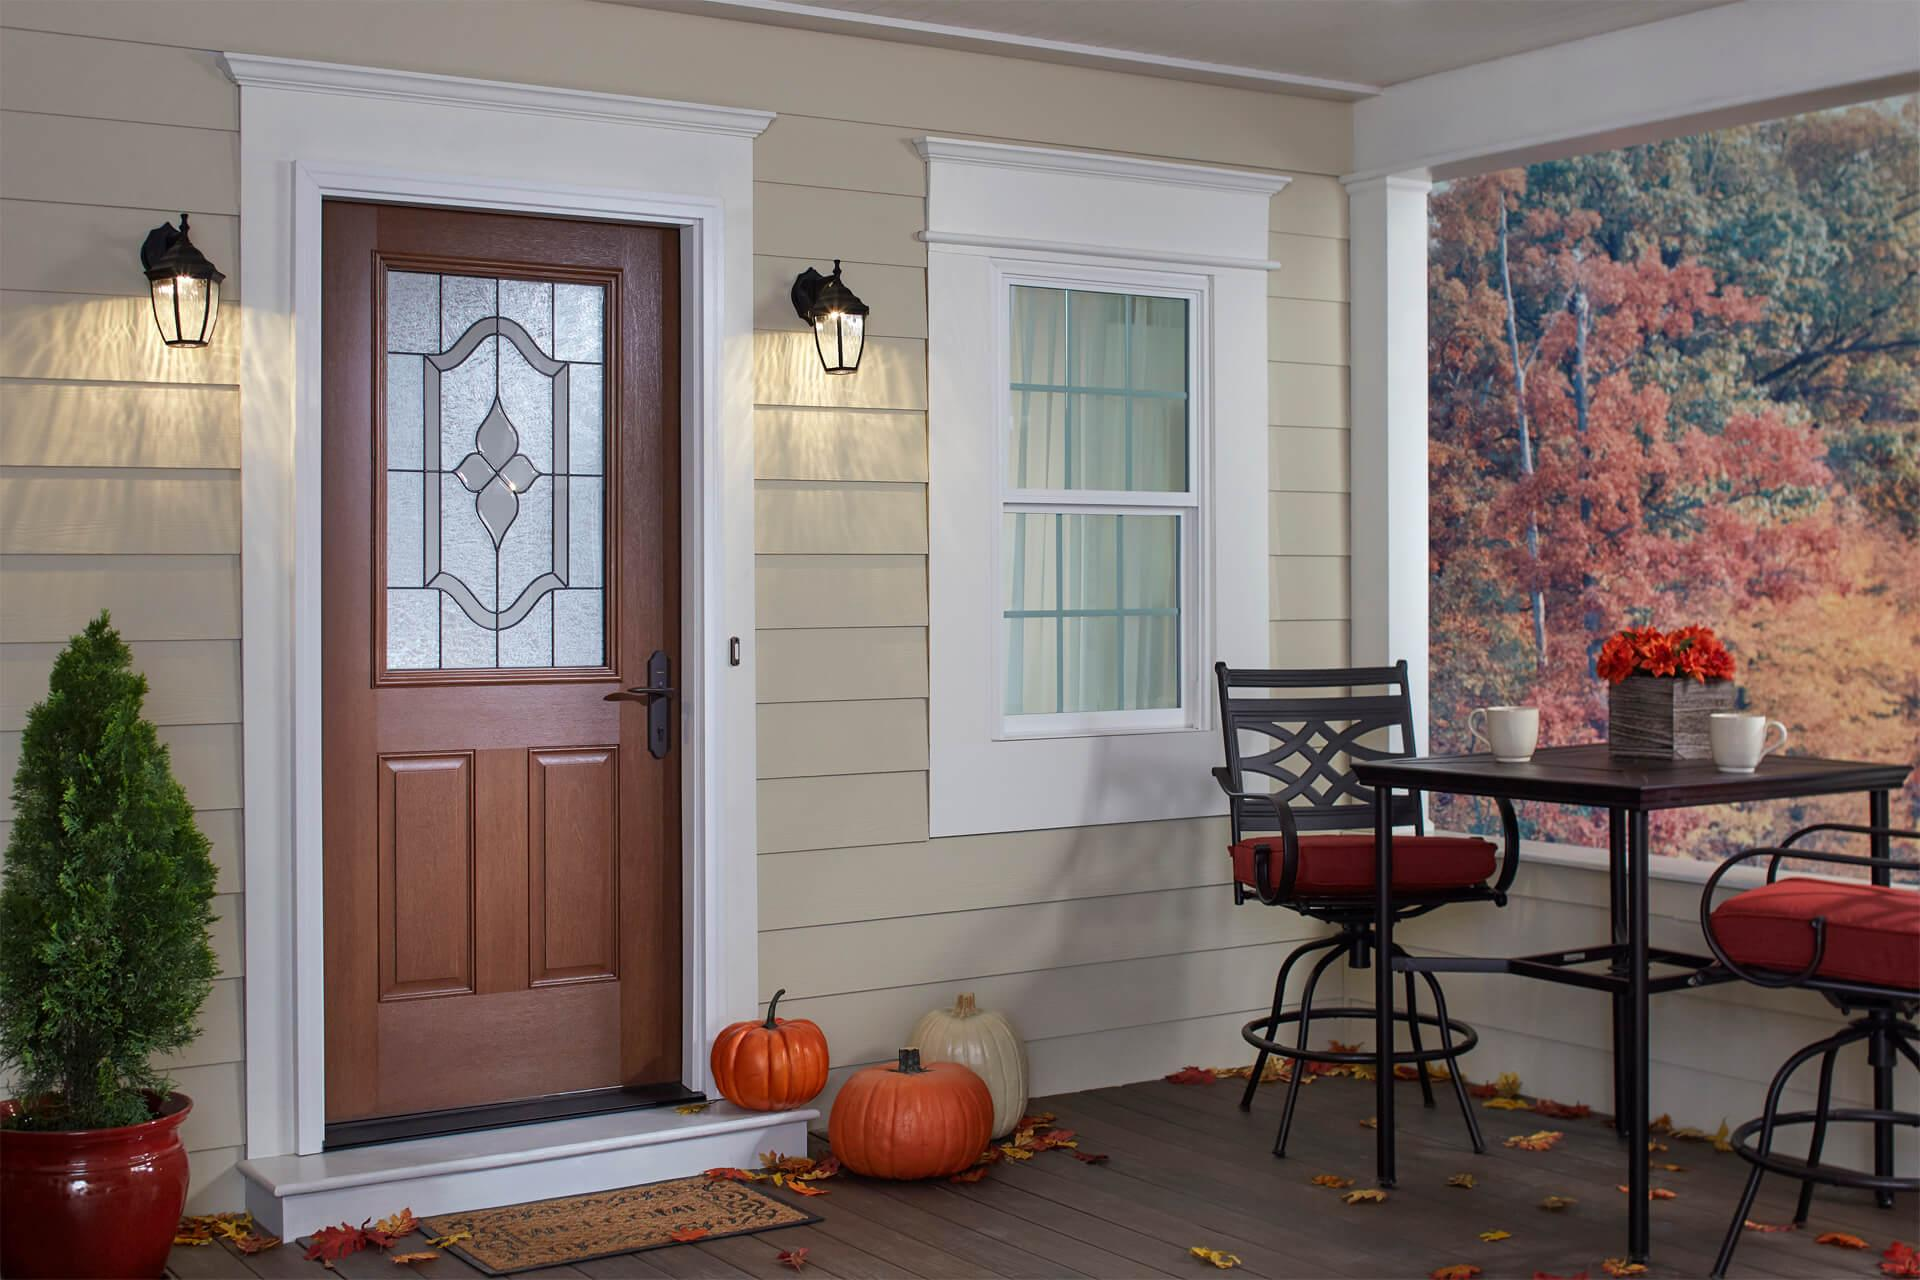 A front door with fall pumpkins sitting on the porch